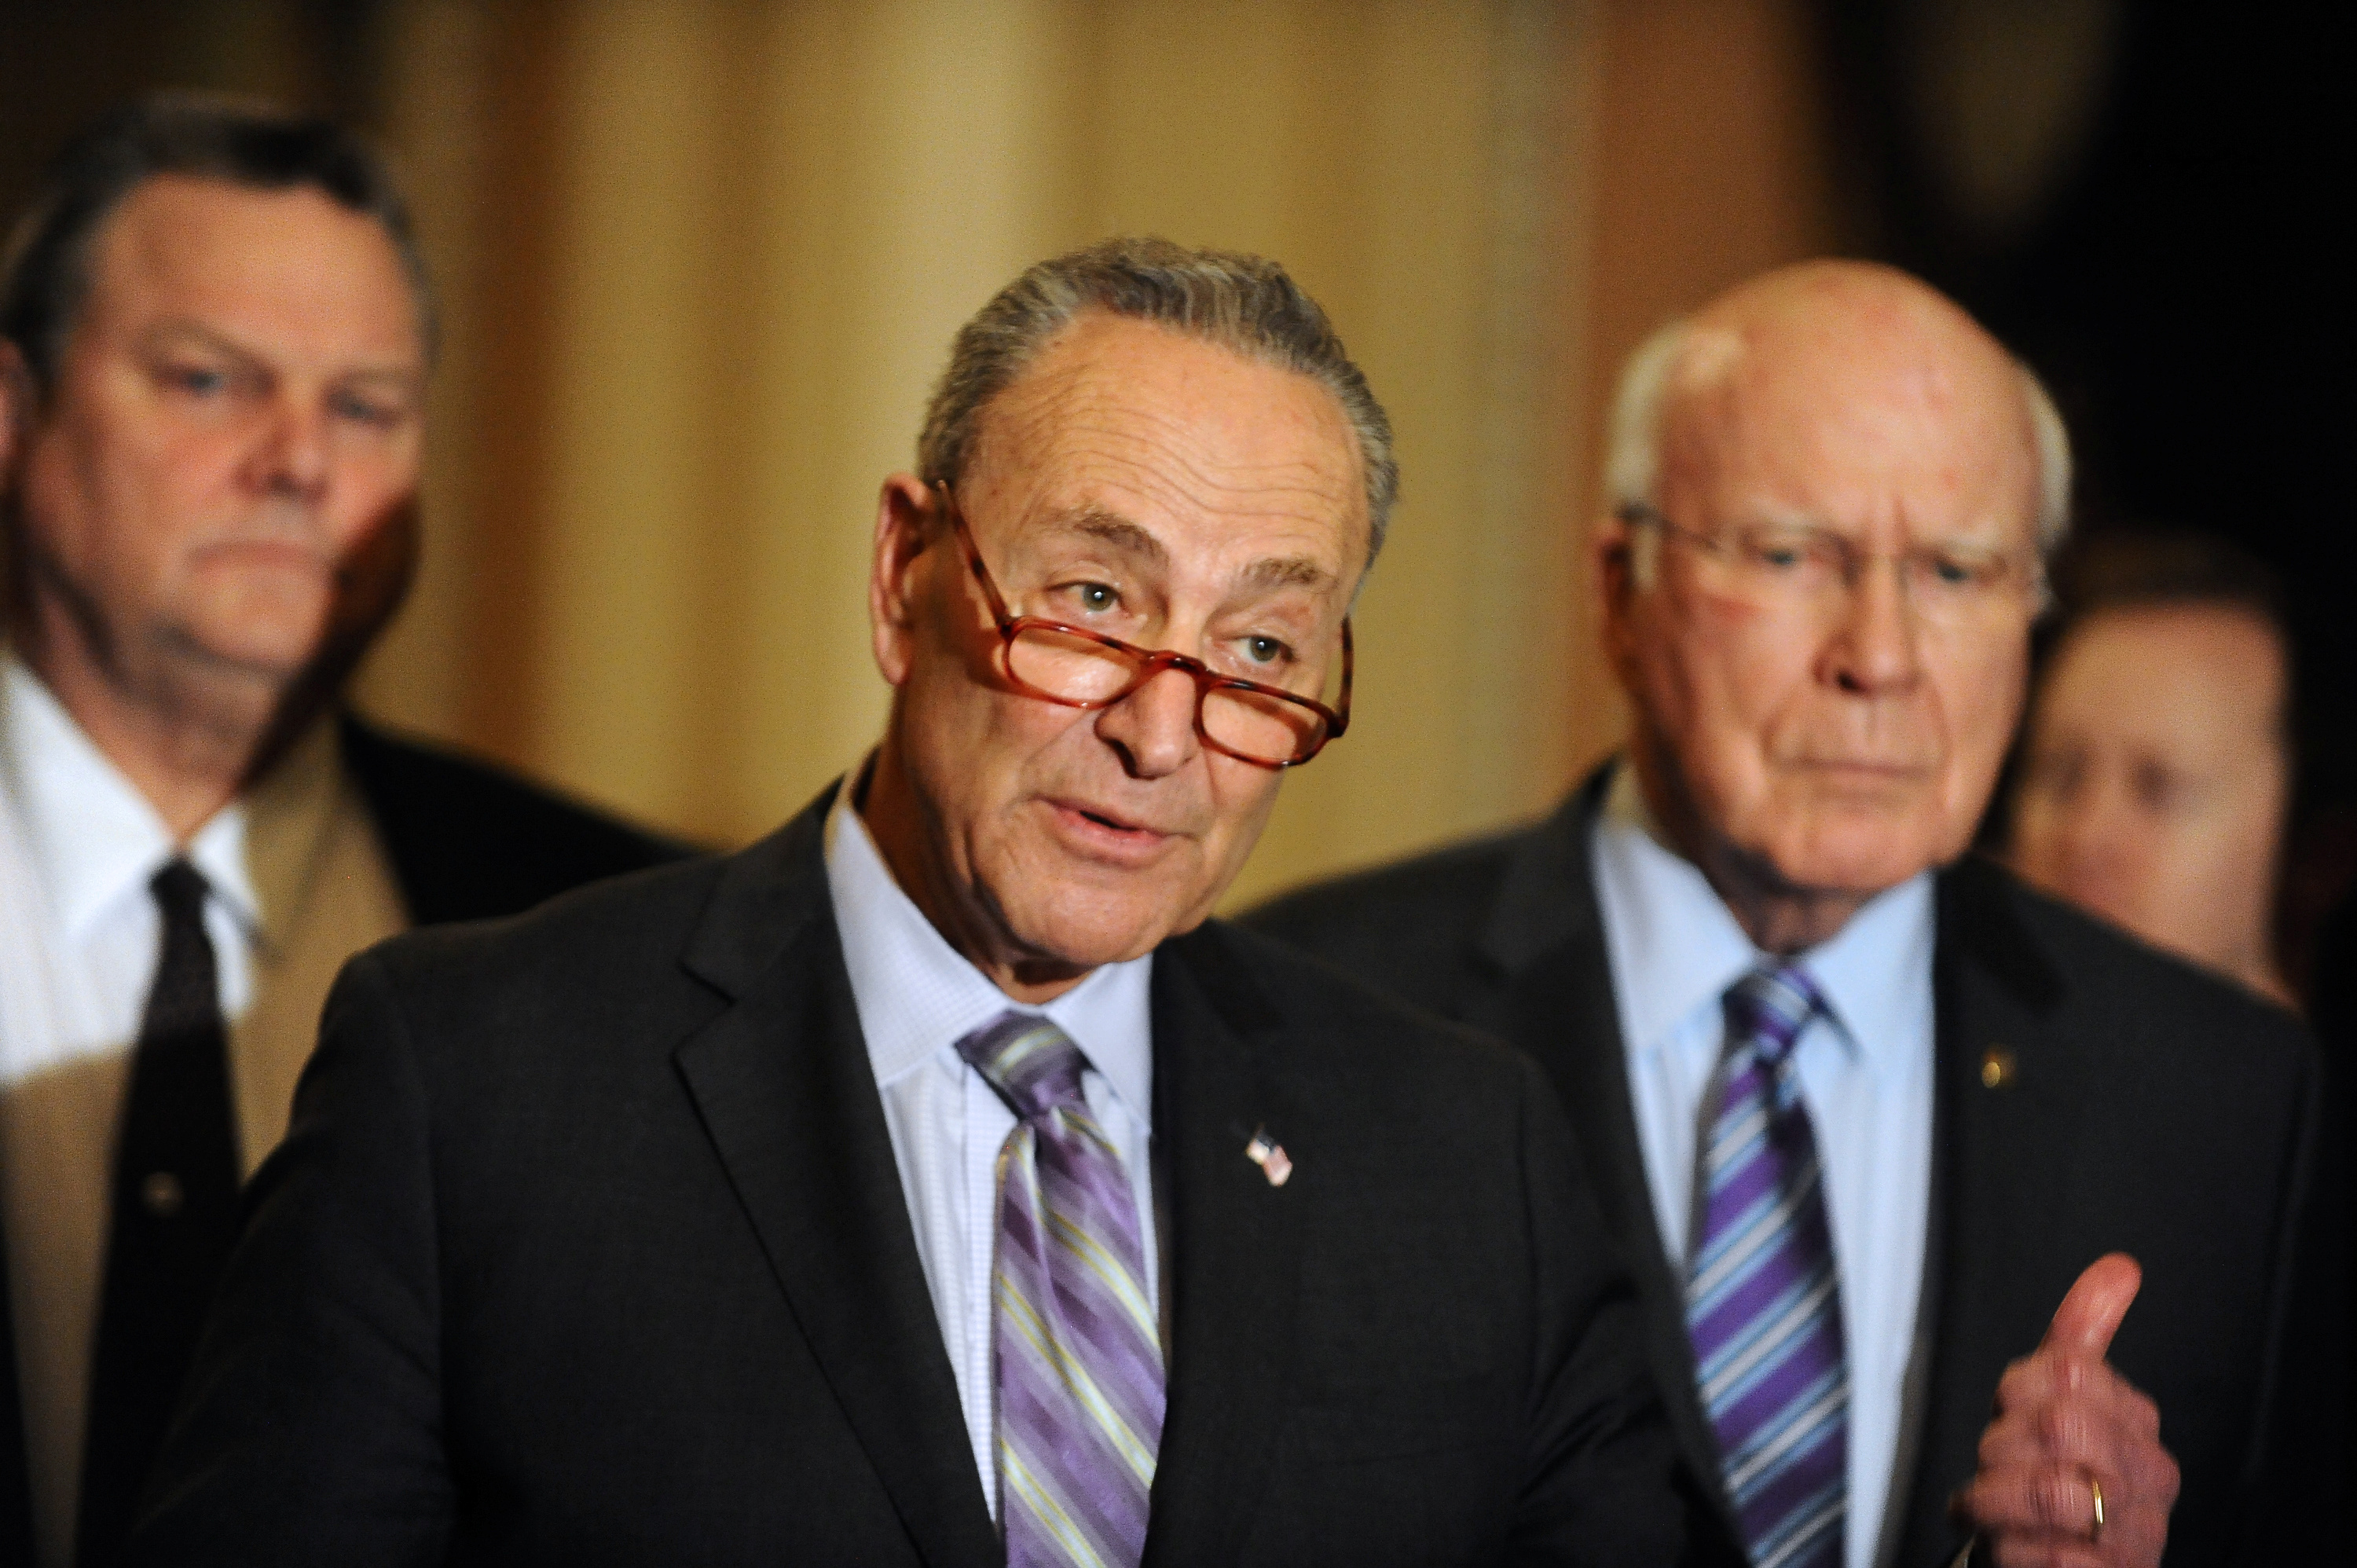 Sen. Chuck Schumer (D-NY) speaks to the media at the U.S. Capitol in Washington